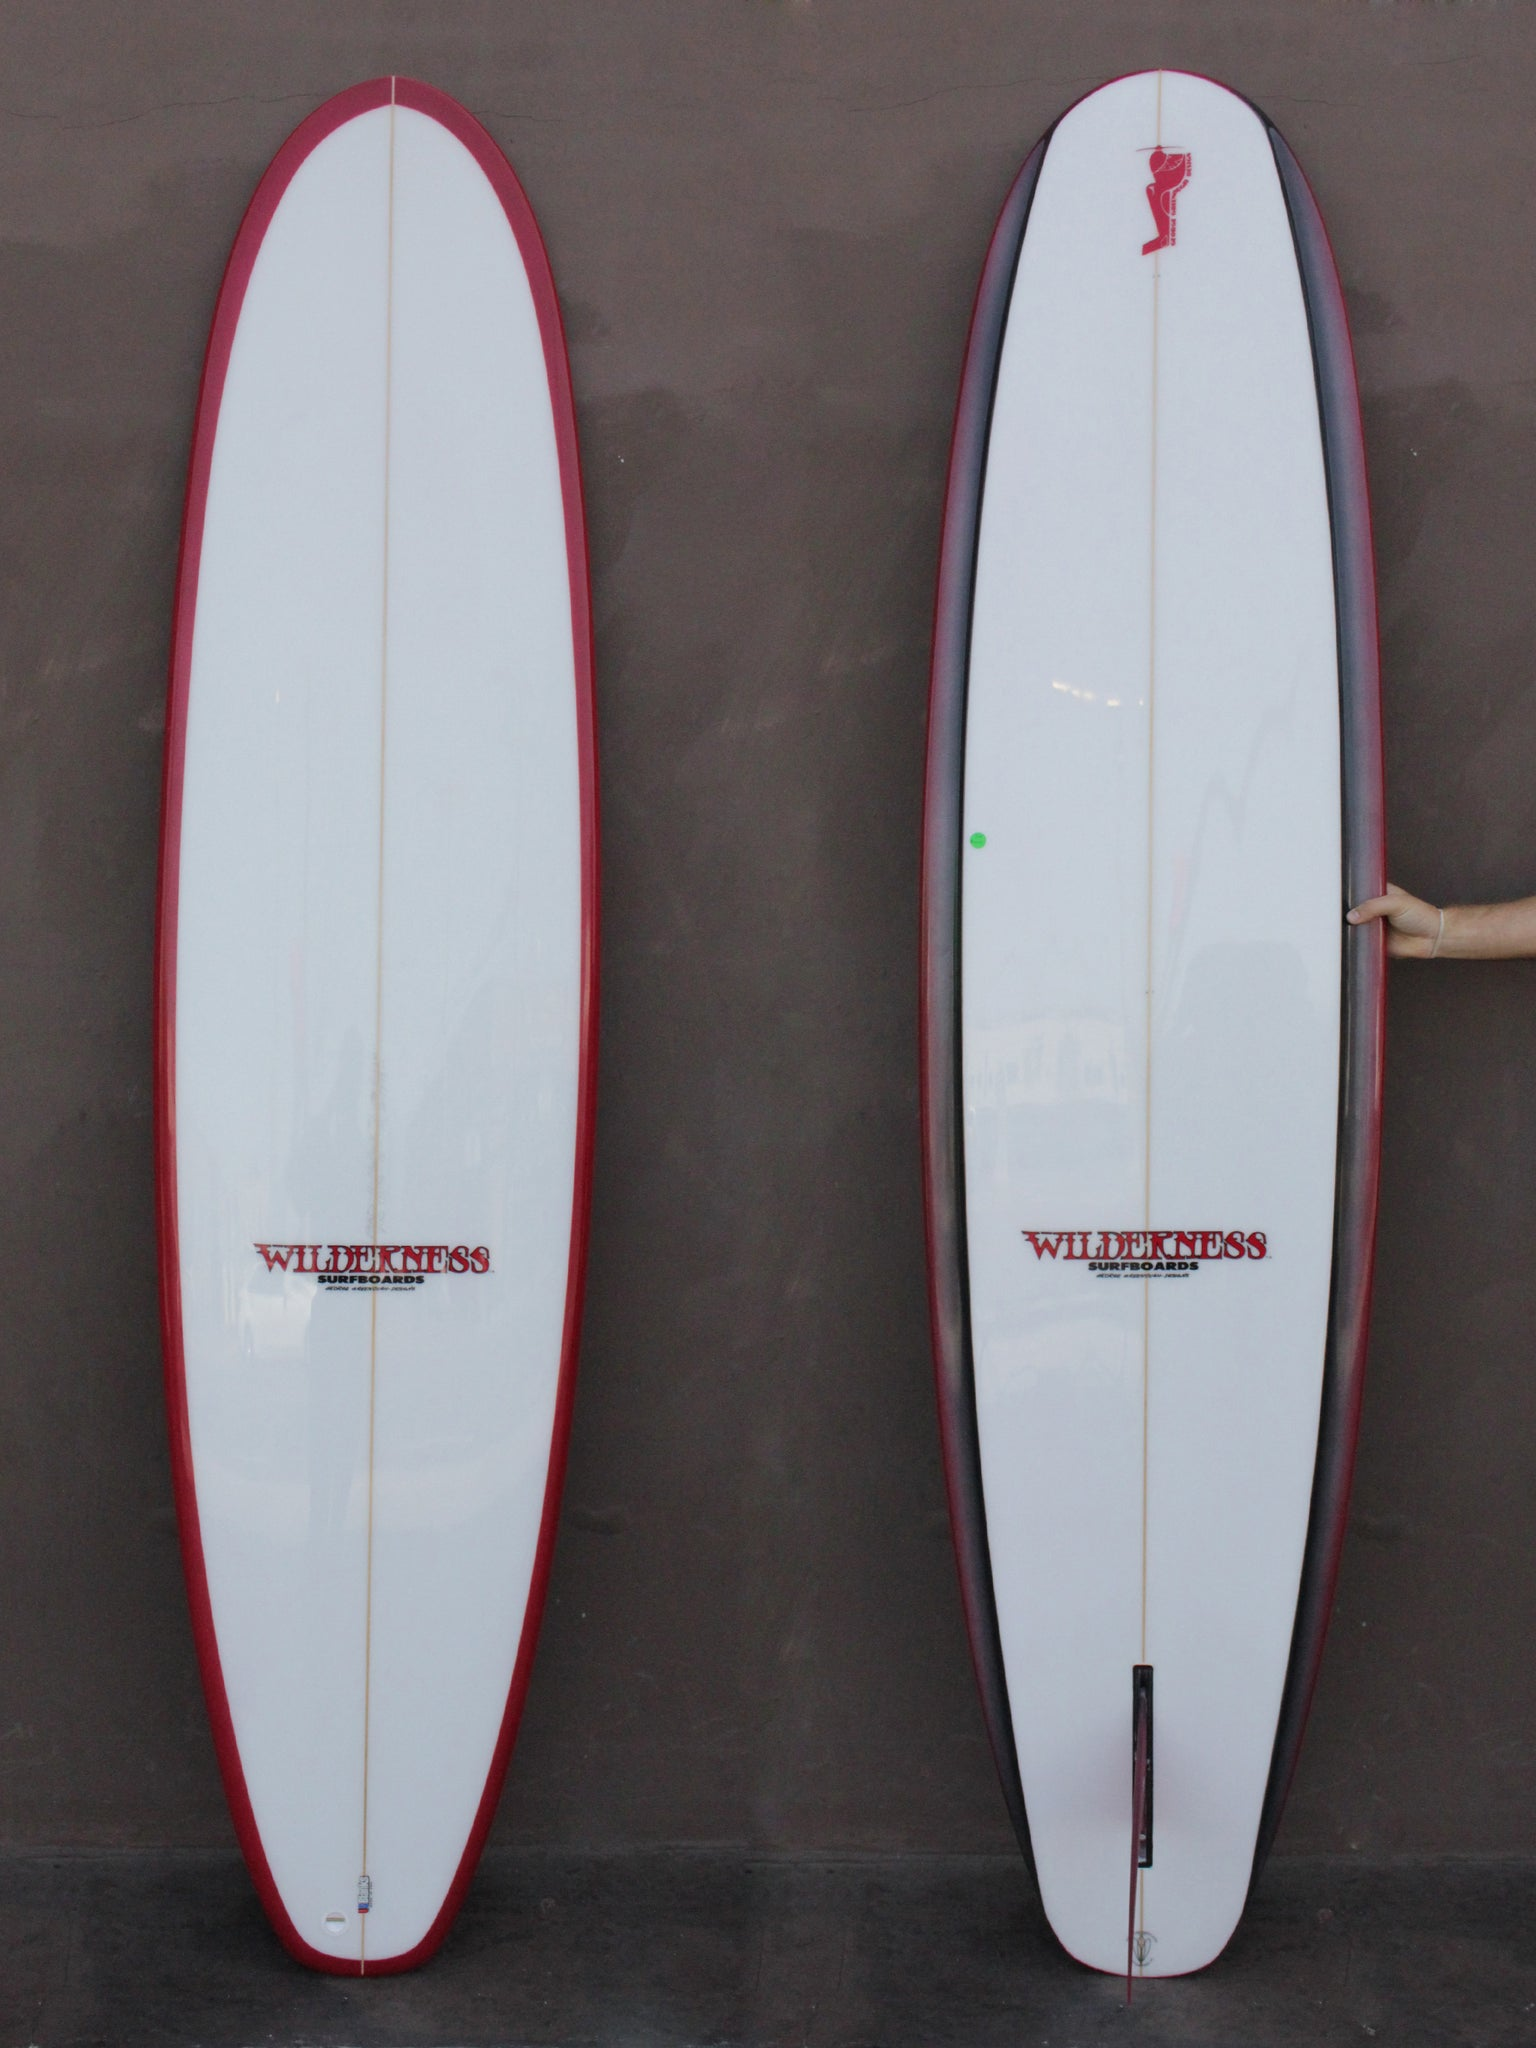 7'10 Wilderness Edge Short Longboard